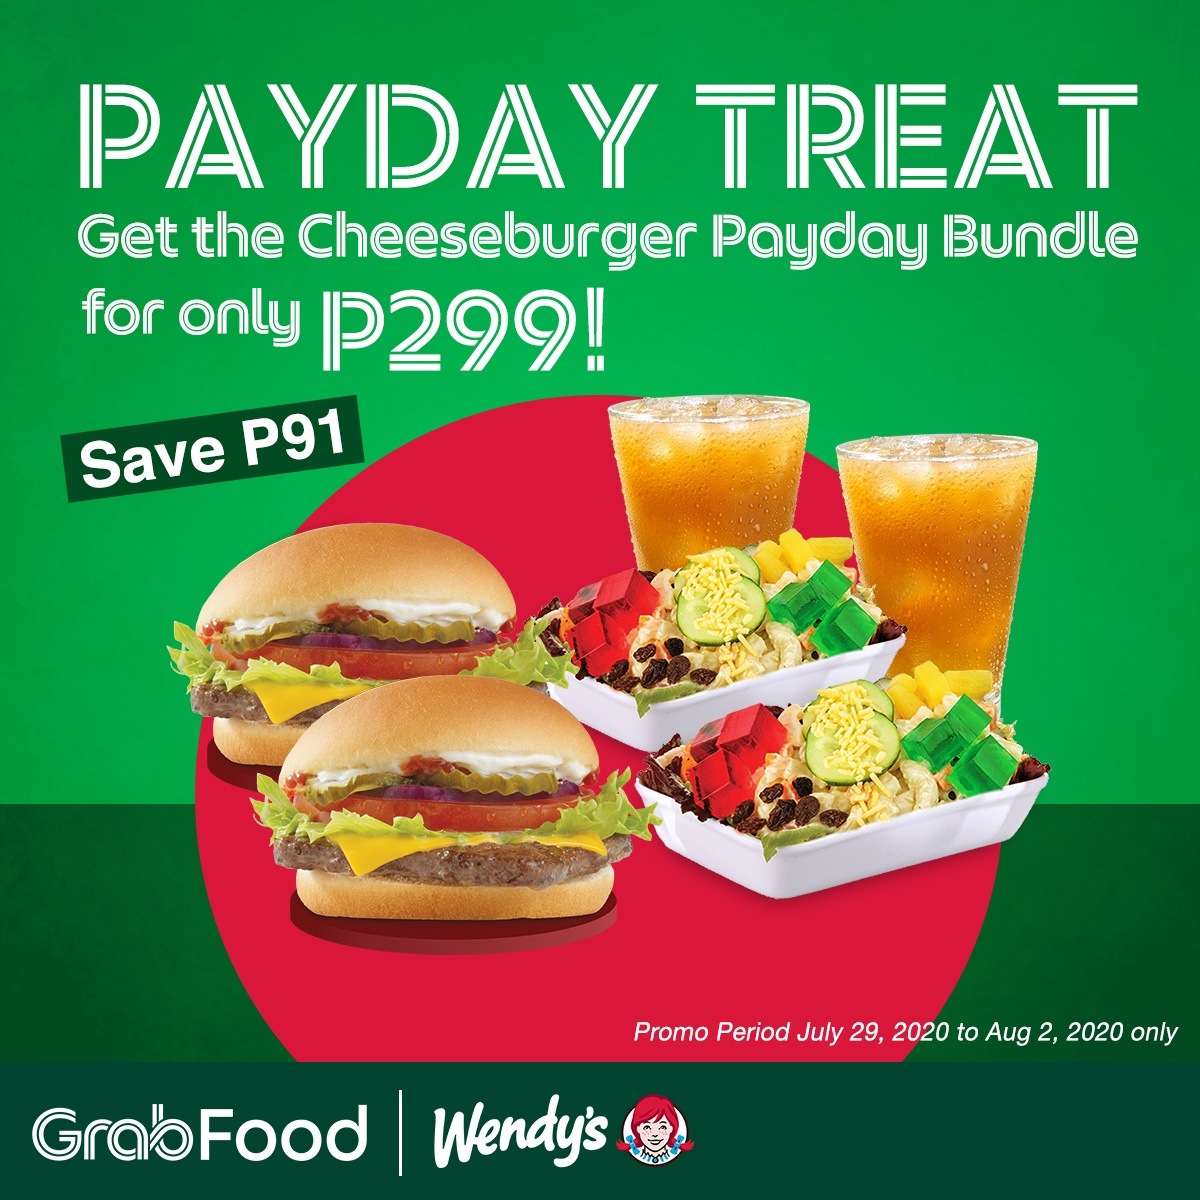 Sweldo na! Treat yourself and a friend with the new Cheeseburger Payday Bundle! Enjoy 2 Cheeseburger Deluxe, 2 Macaroni Side Salads, and 2 Iced Teas for just P299! Order via Grab, https://t.co/lAfPE697Zv, or our hotline at 8-533-3333 from July 29 - August 2, 2020. https://t.co/xajuiPggyN